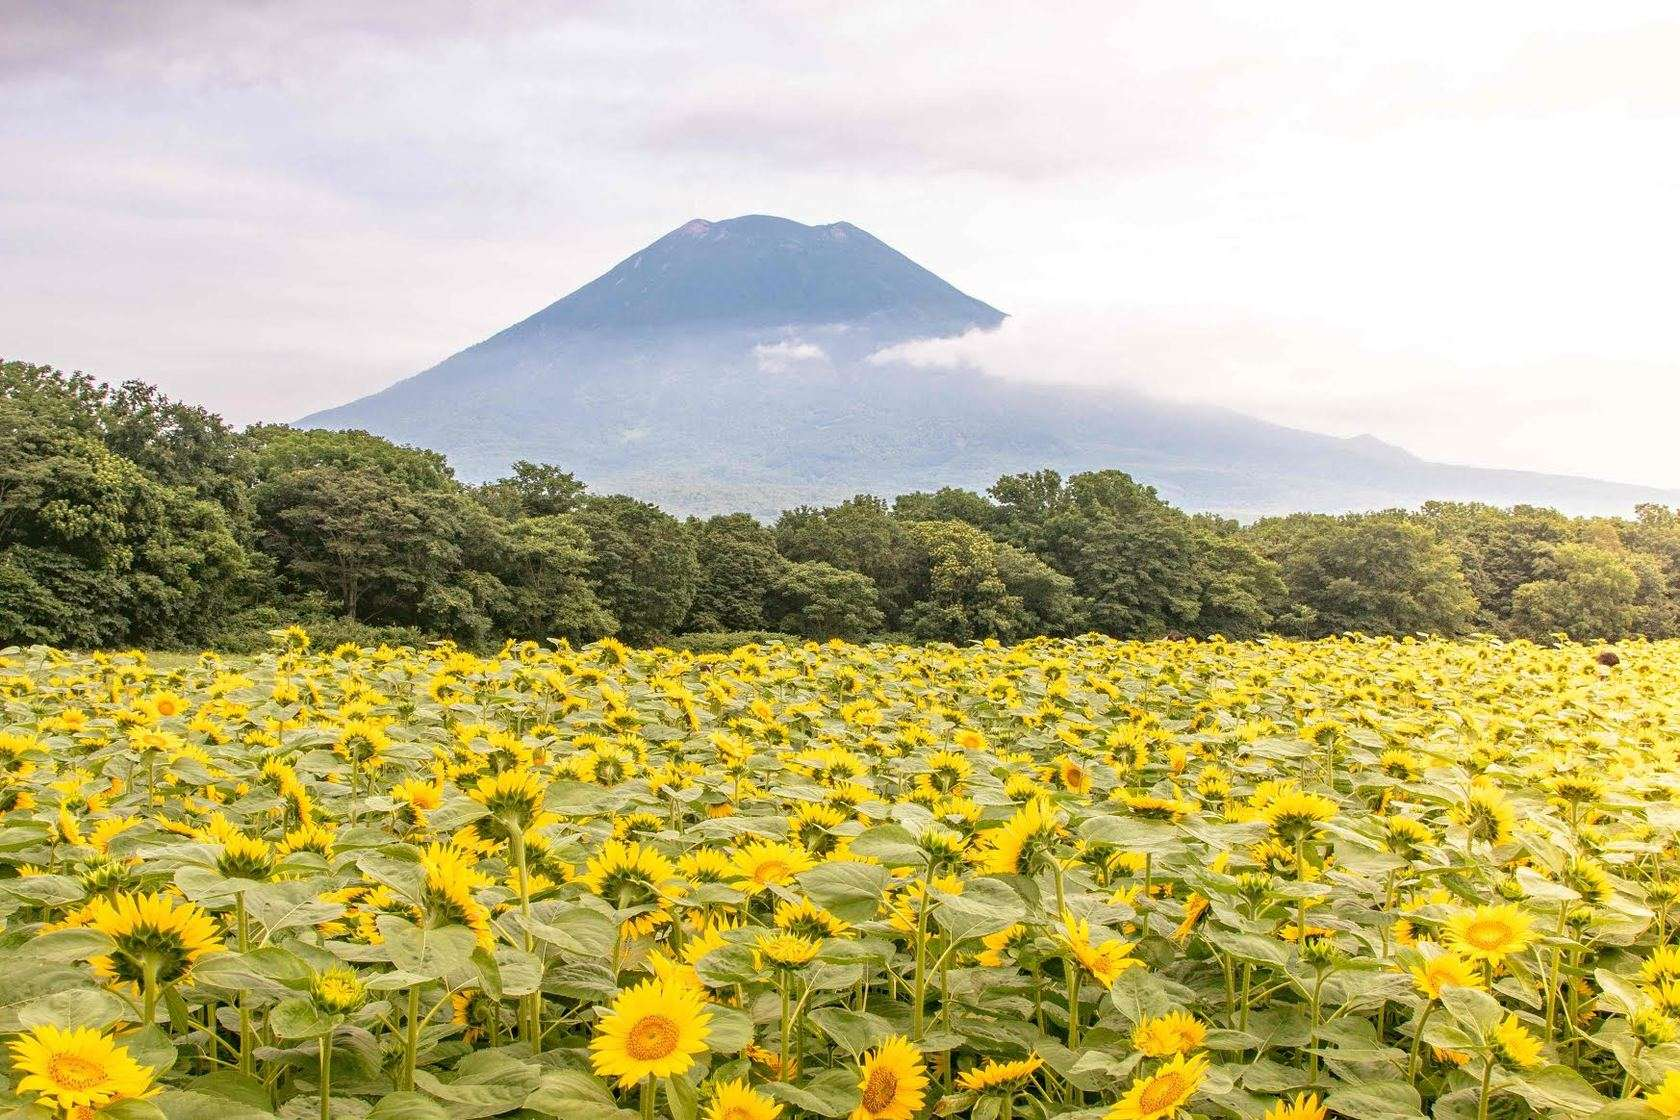 Global Hotel Brands boosts Japan's Niseko tourism | The Thaiger